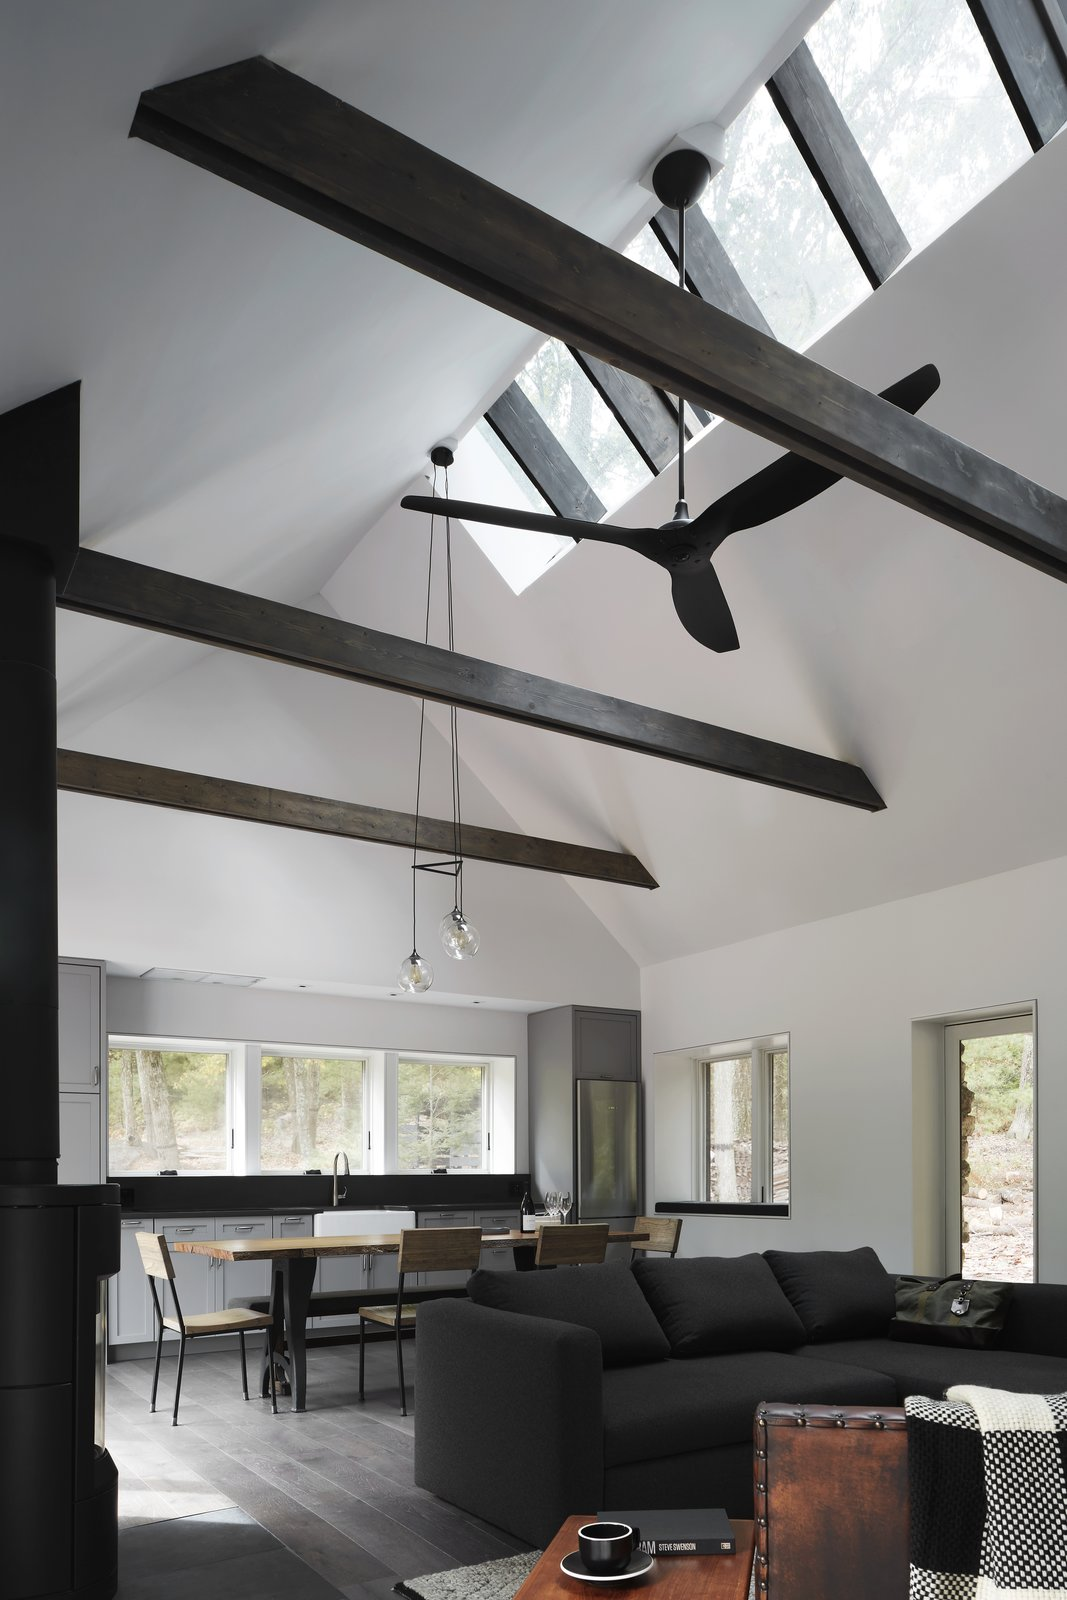 Windows and Skylight Window Type  Photo 6 of 13 in A Minimalist Retreat Rises From Old Stone Walls in Hudson Valley